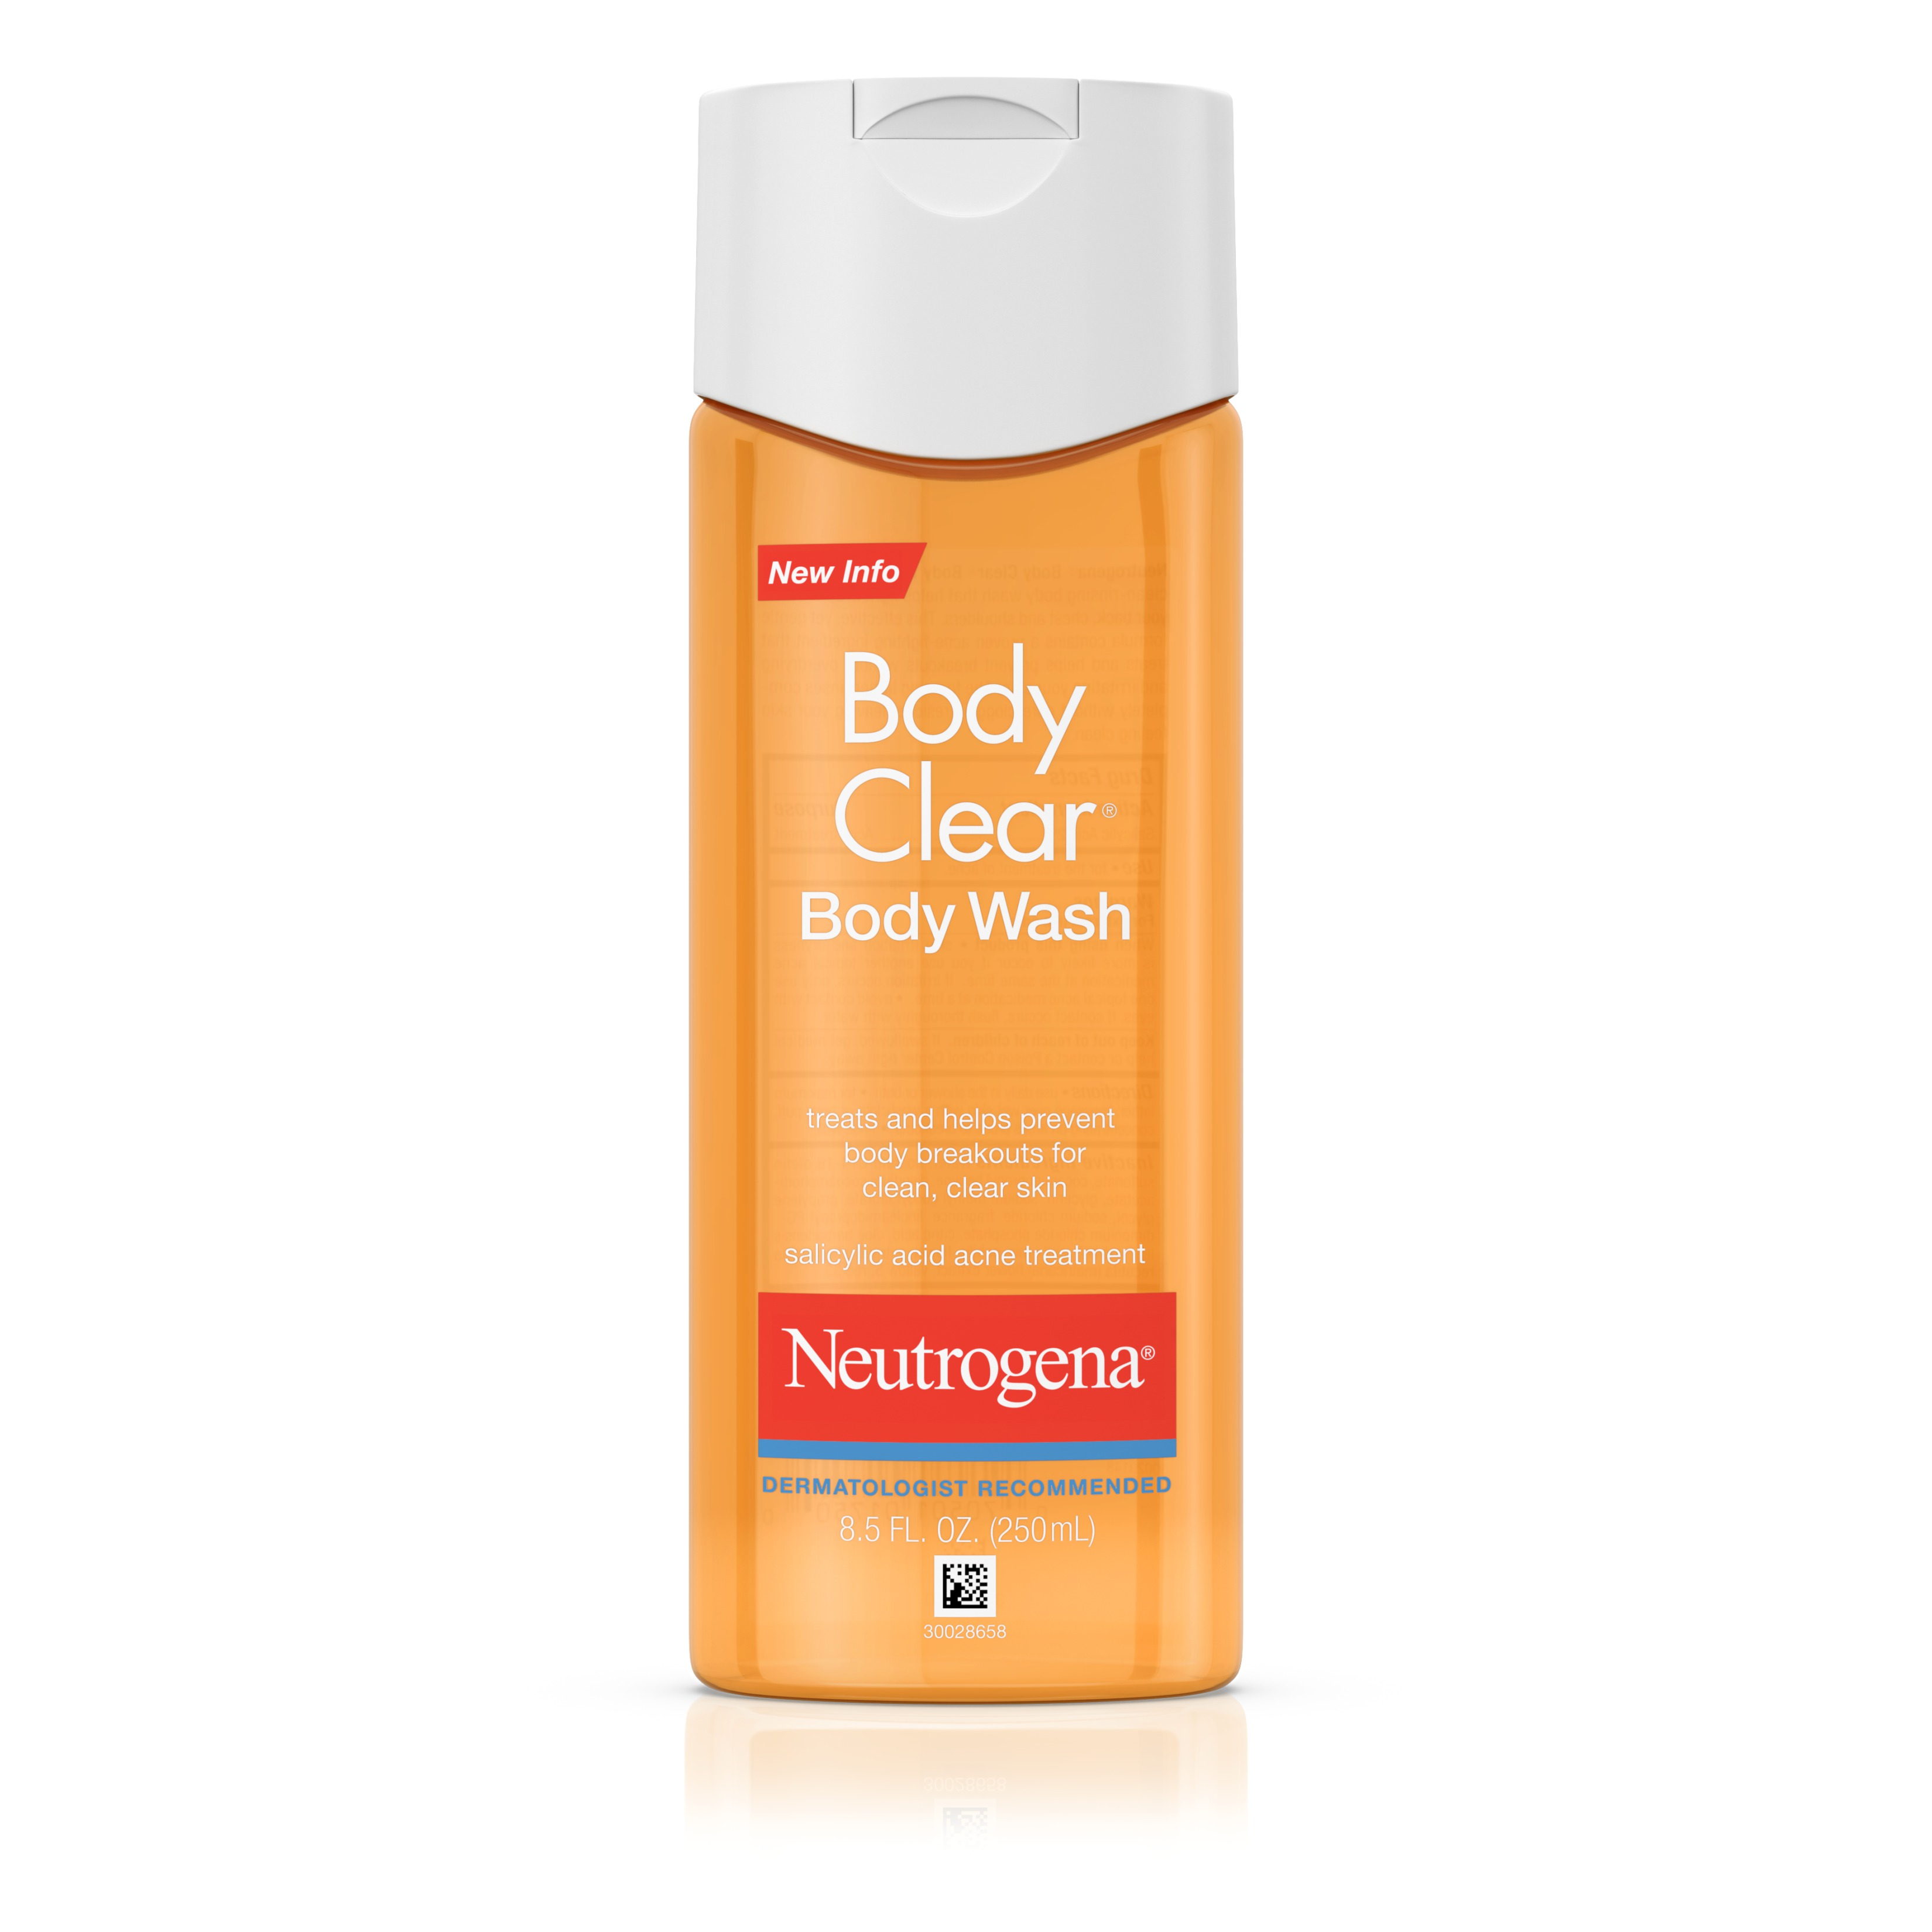 Neutrogena Body Clear Acne Body Wash with Glycerin, 8.5 fl. oz